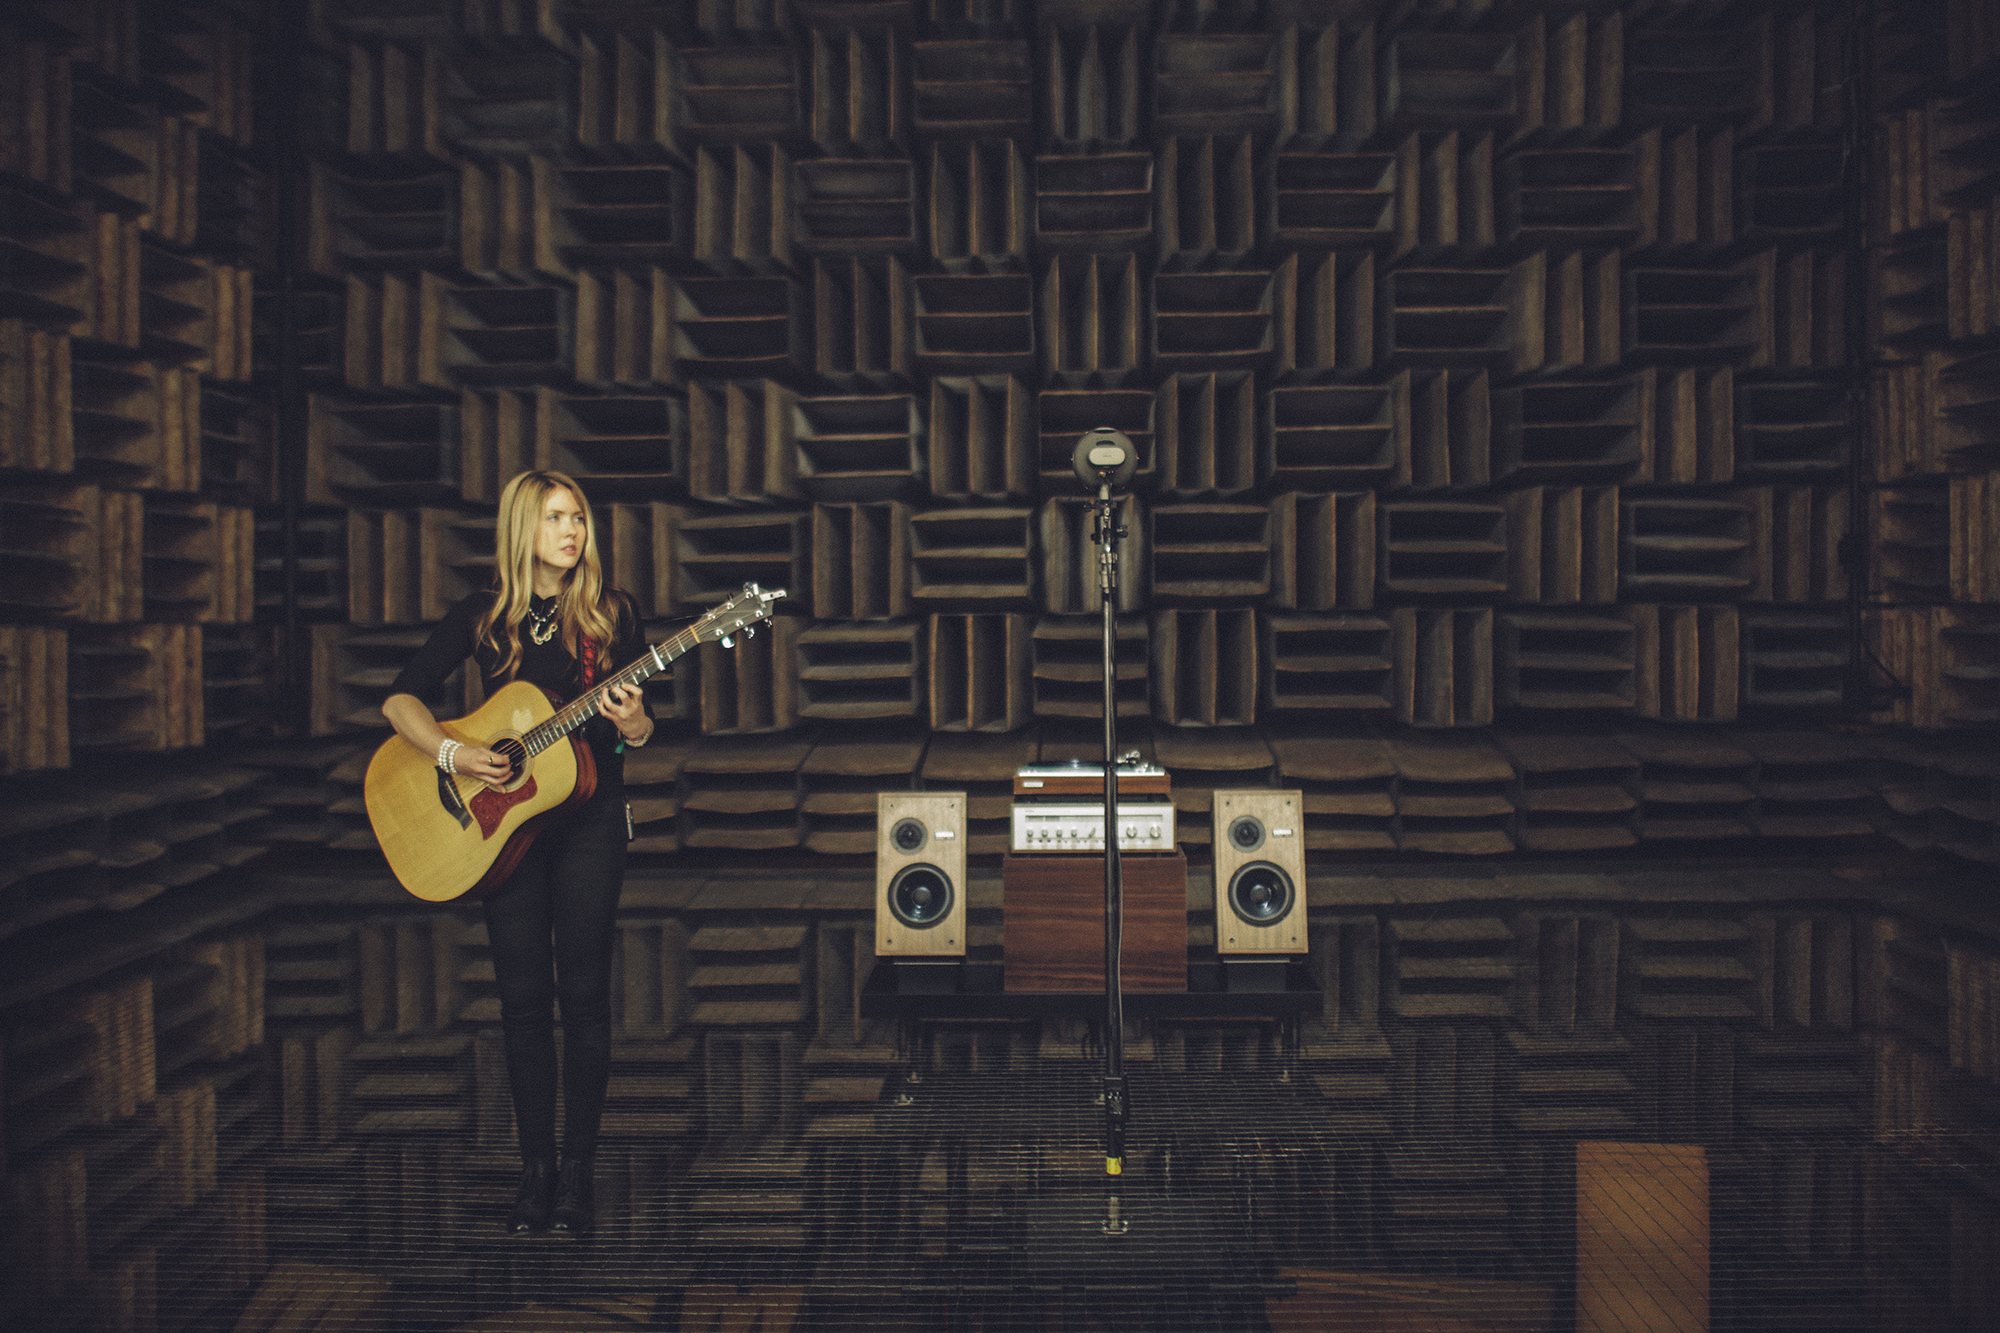 Beatie Wolfe - Raw Space - Bell Labs Anechoic Chamber by Veanne Cao (1).jpg